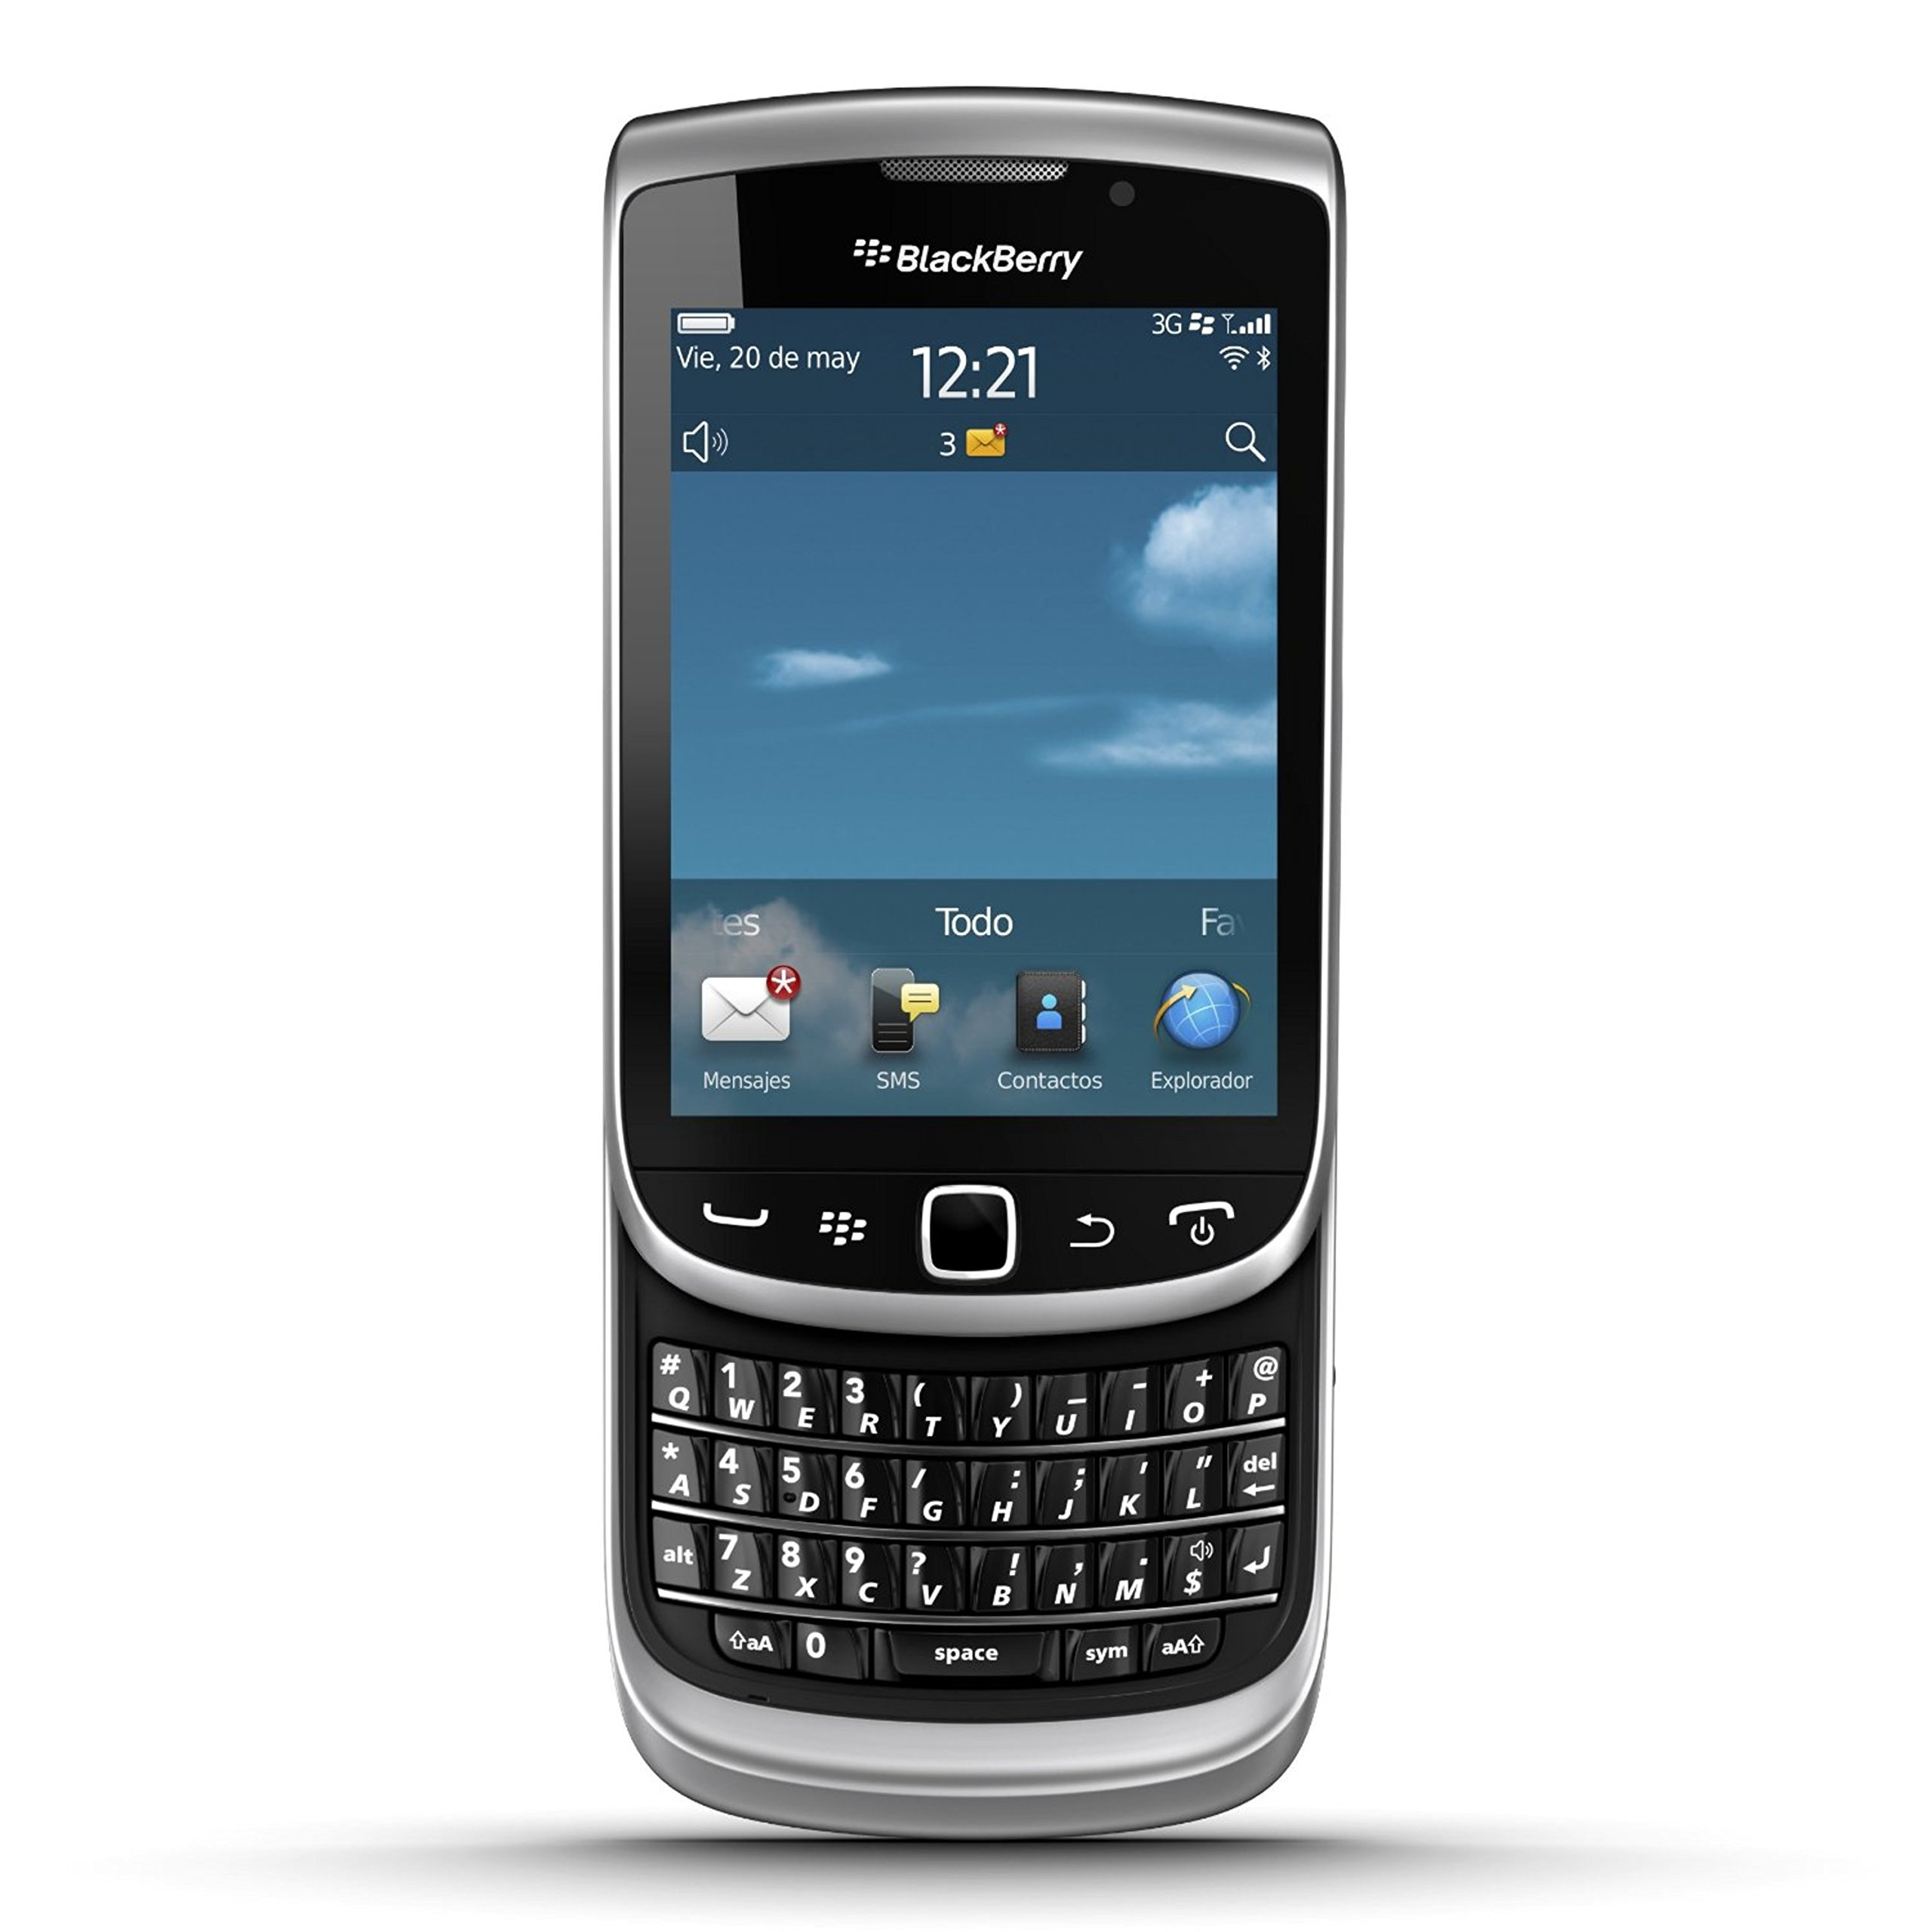 Blackberry Torch 9810 Unlocked GSM Phone with OS 7.0, Touchscreen, Slider-QWERTY Keboard, Optical Trackpad, 5MP Camera, Video, GPS, Wi-Fi, Bluetooth and microSD Slot - Silver